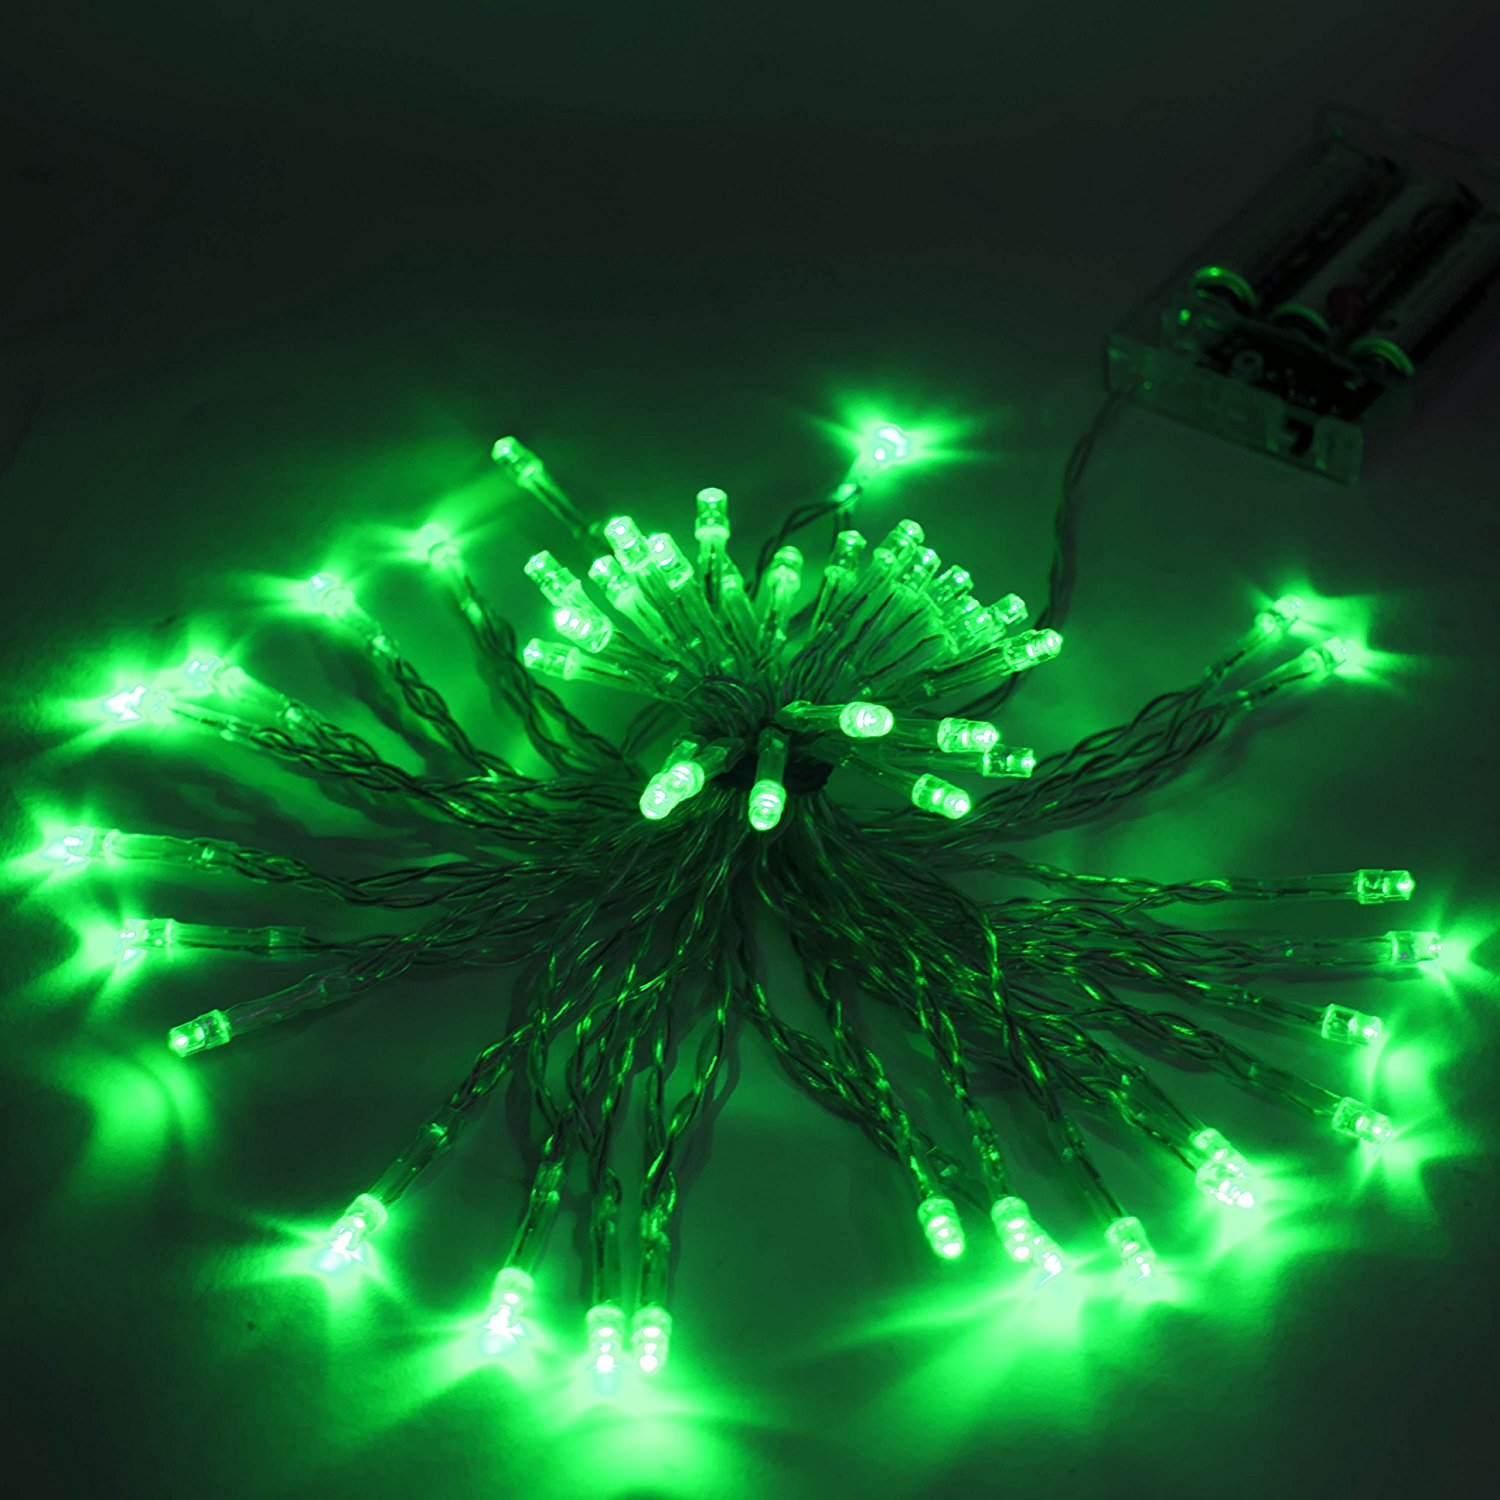 40 LED 13 Feet Battery Operated String Christmas Lights Green Color, Lot of 5